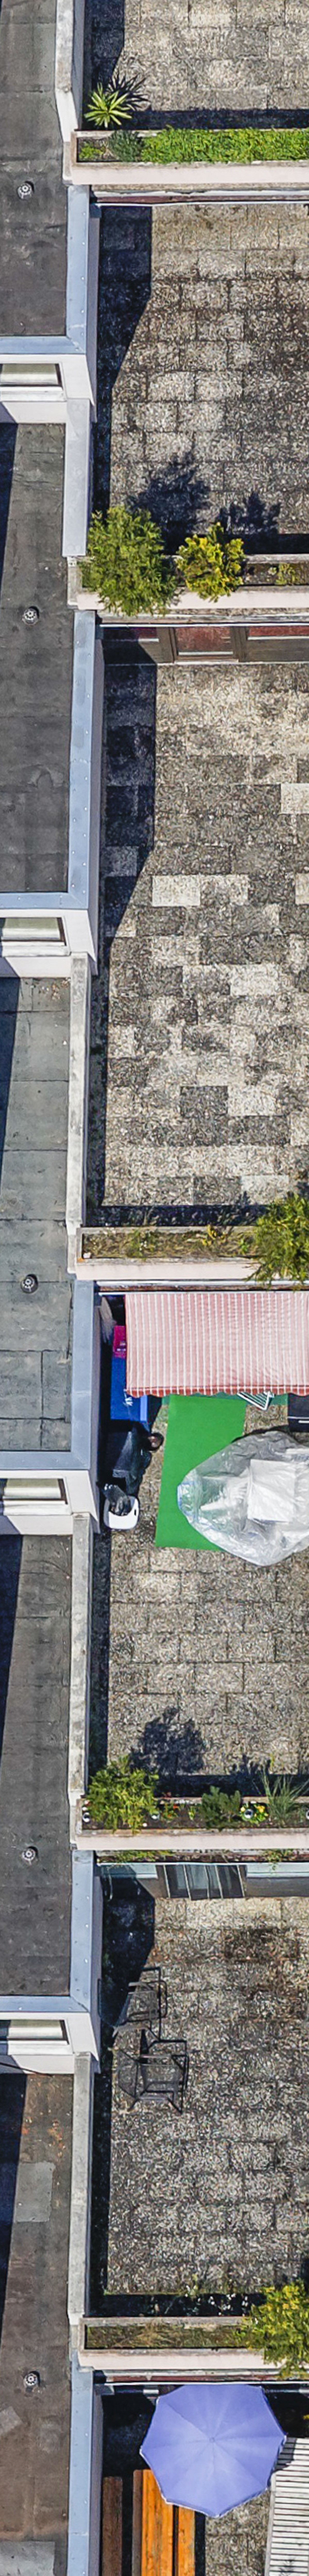 Aerial view of an appartment building for students in Passau - Klaus Leidorf Aerial Photography